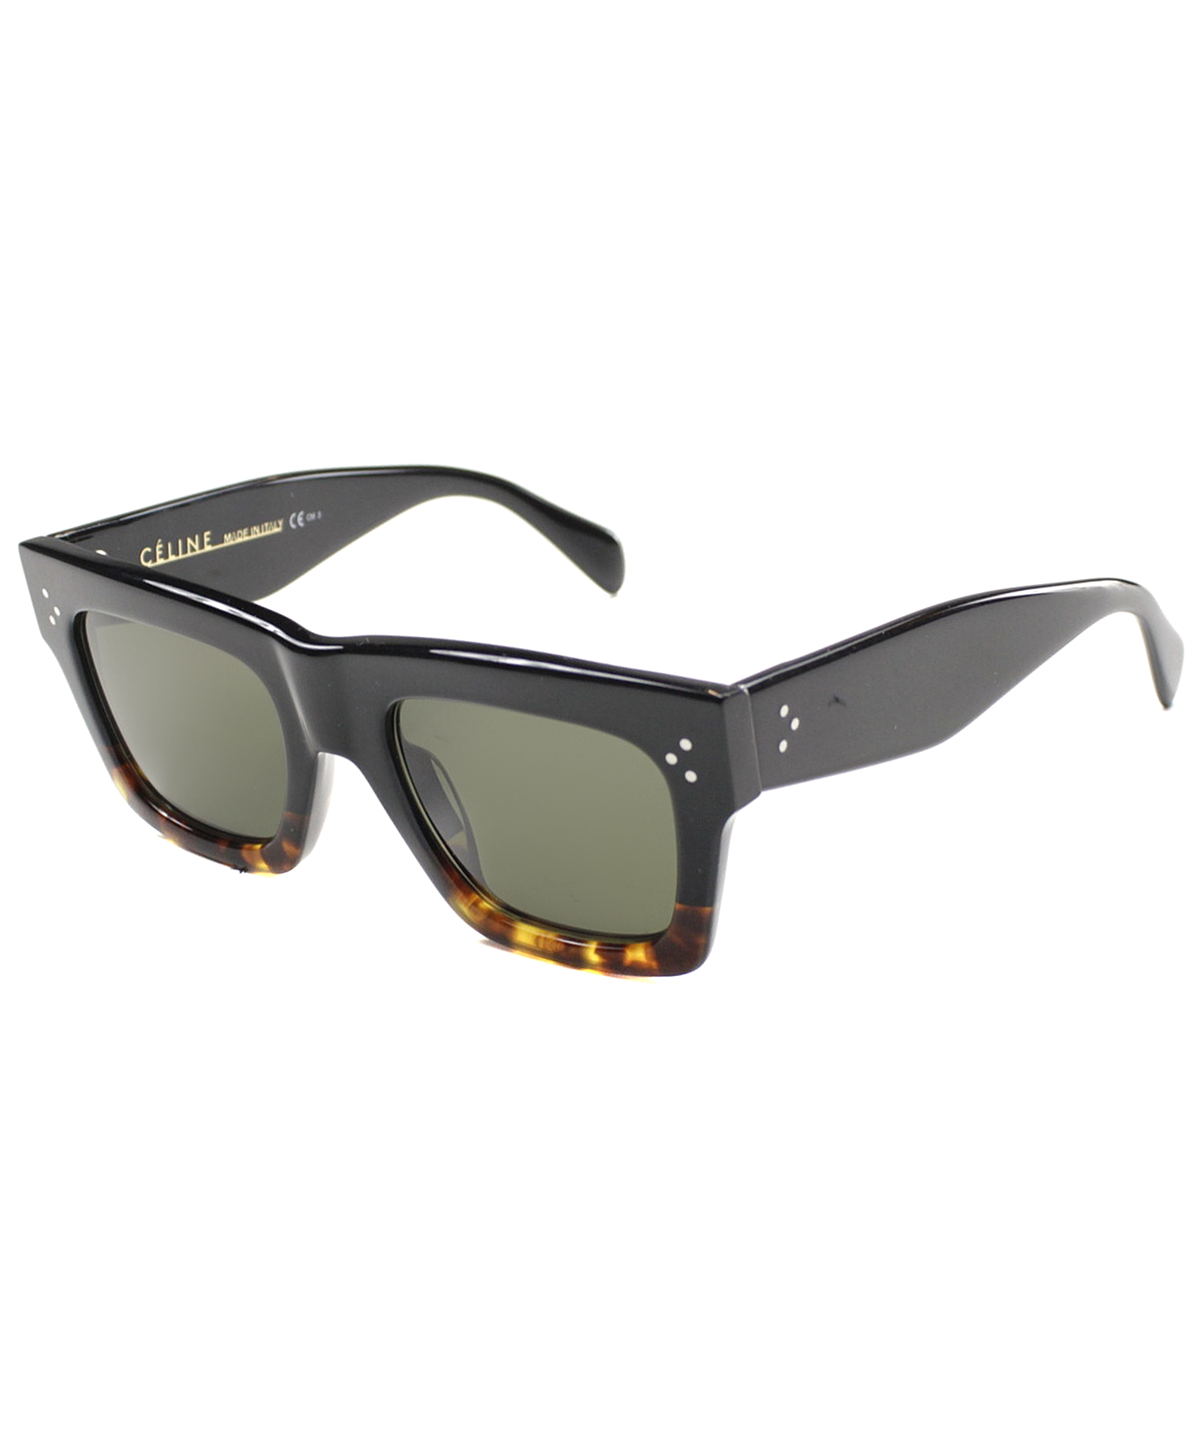 Celine Square Plastic Sunglasses In Black Havana